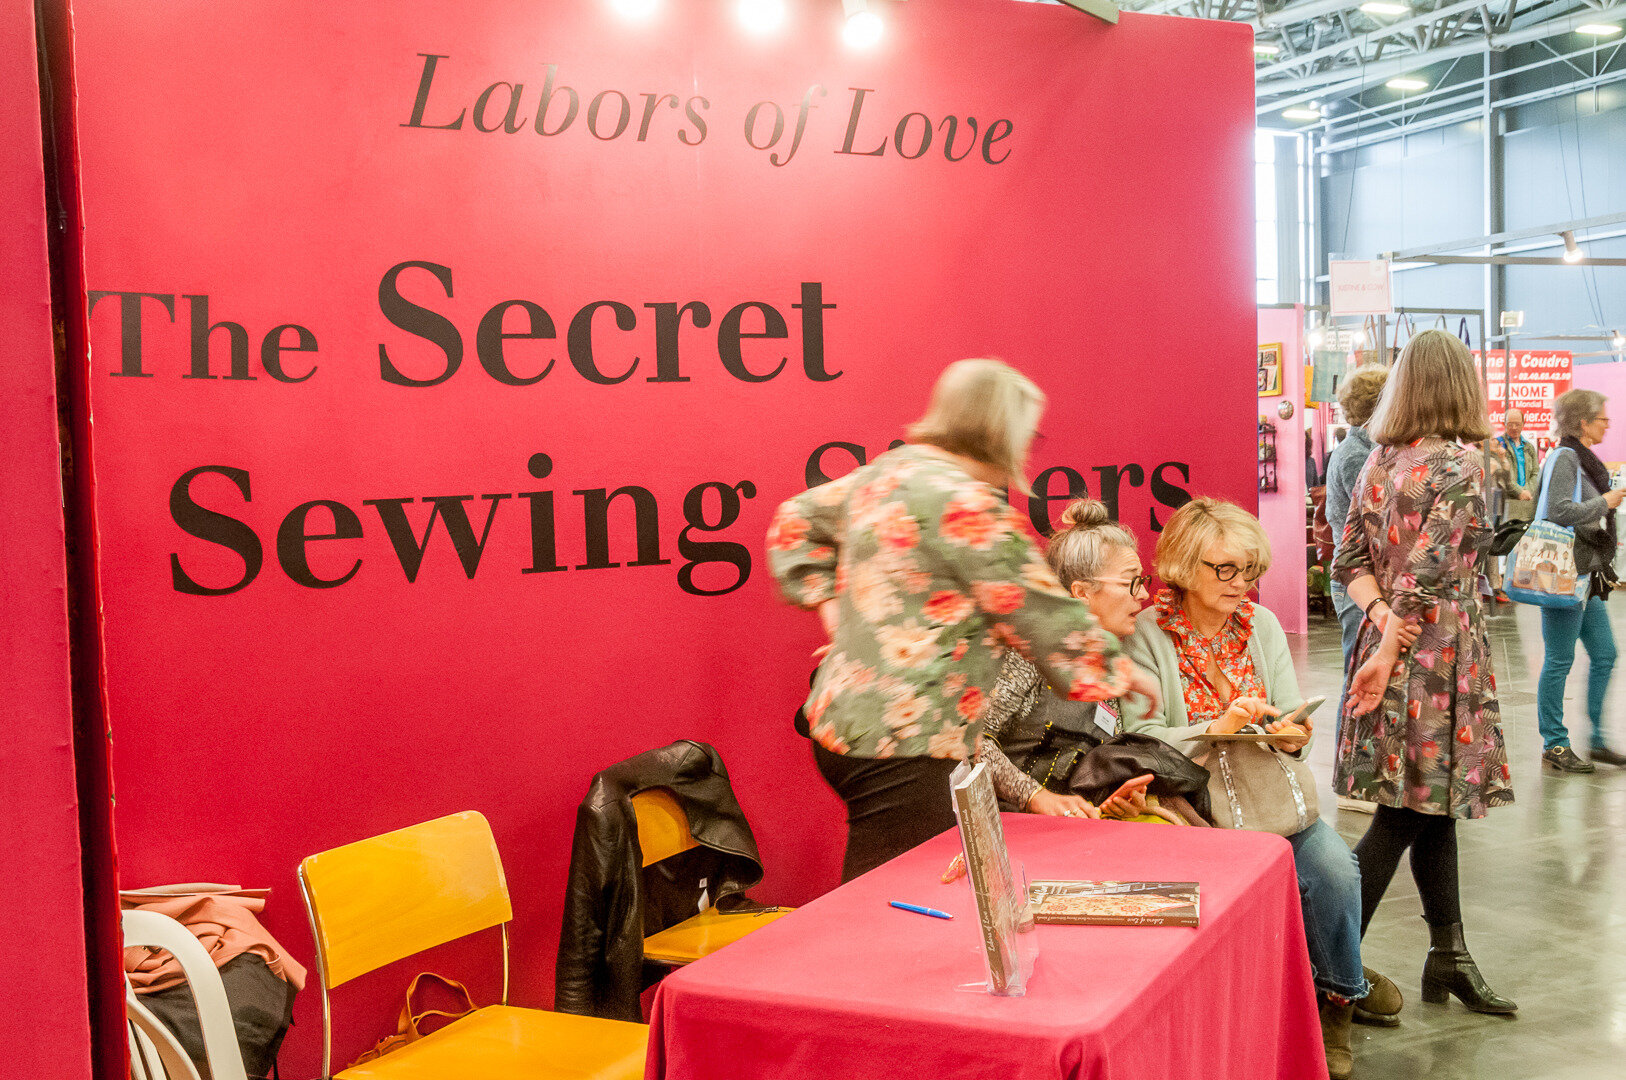 2019-04-26_10-59-37-Nantes-The Secret Sewing Sisters et leurs amies